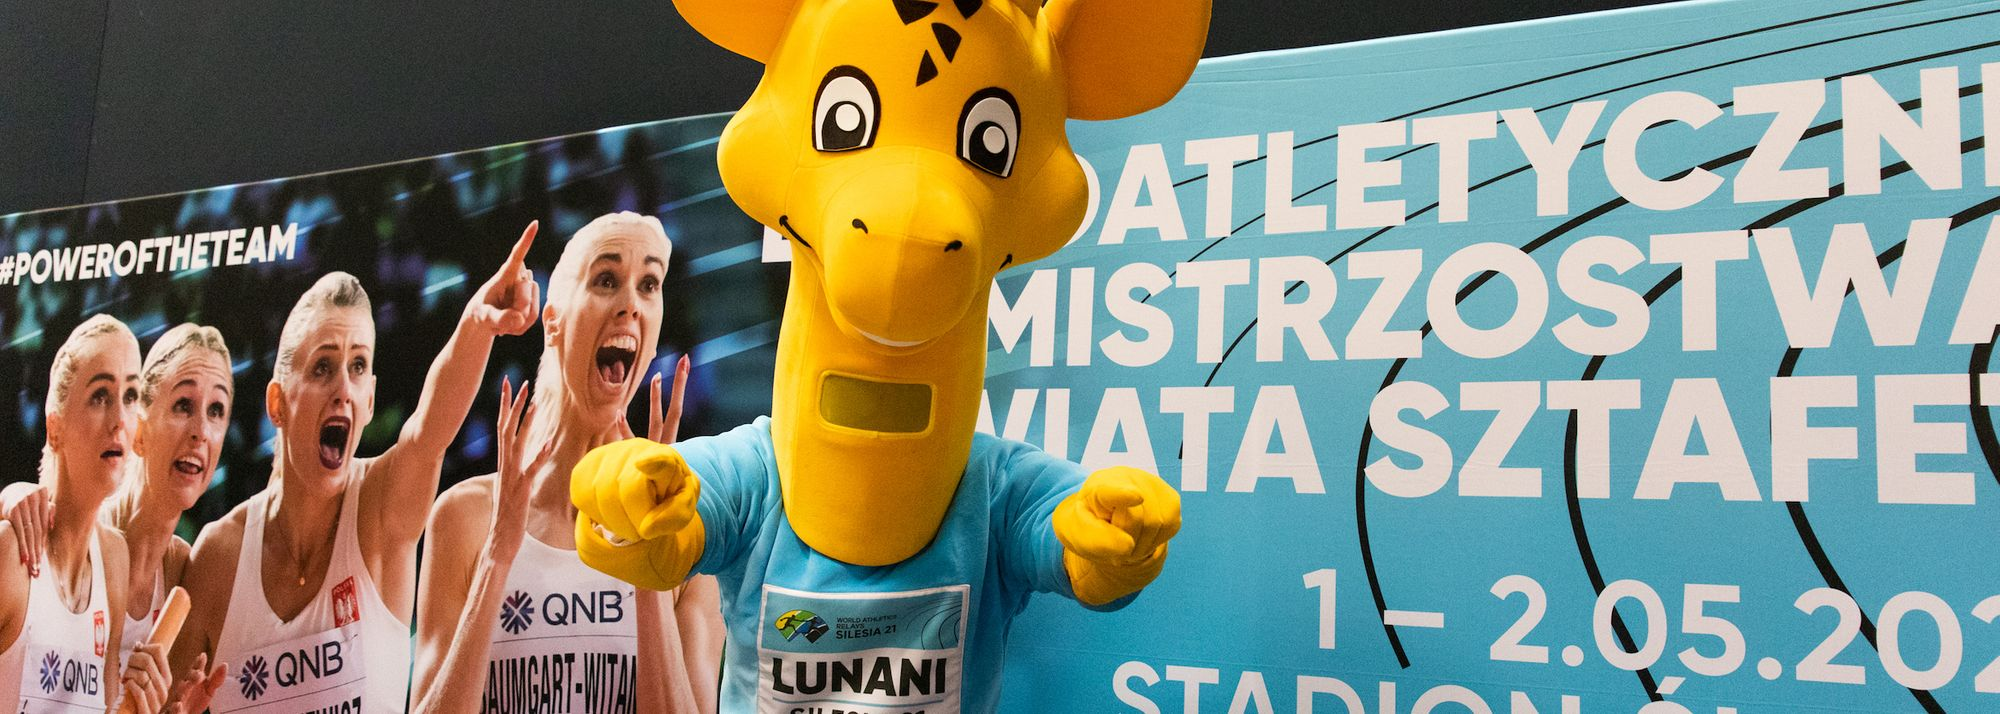 Organisers of the World Athletics Relays Silesia21 marked 100 days to go with an appearance by Lunani, one of the tallest mascots in sport.